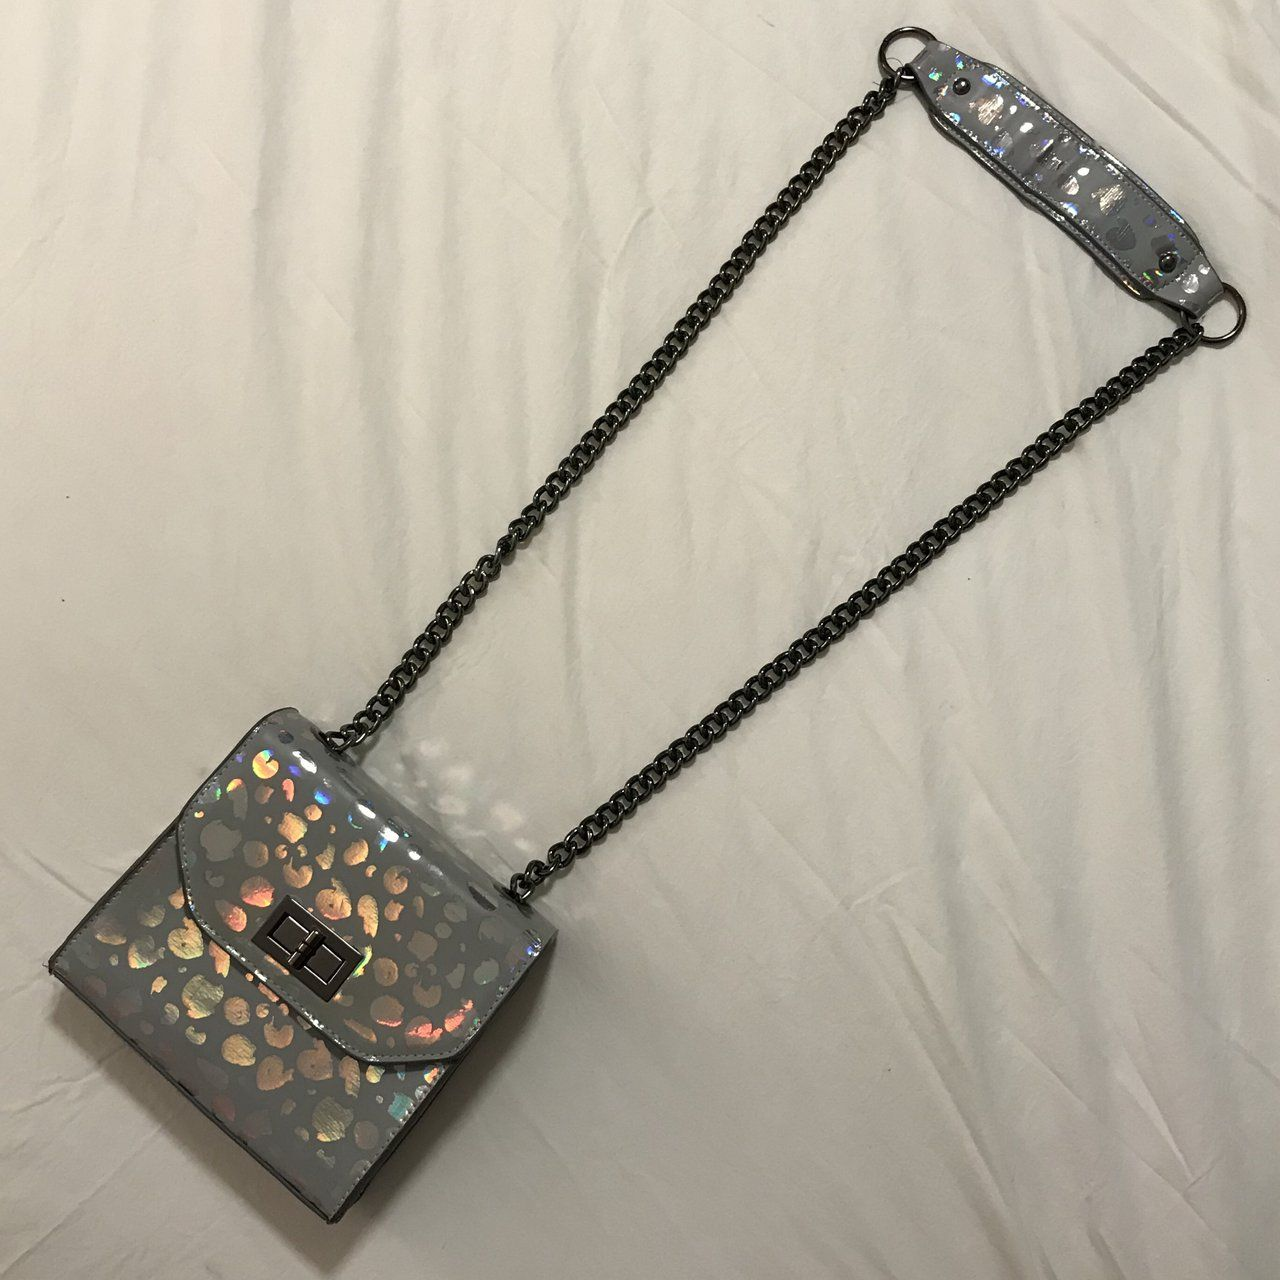 d6042a2e6338 Brand New Skinny Dip Mini Crossbody Bag New without tags, pale grey colour  with iridescent leopard pattern and black interior with small open top  pocket on ...